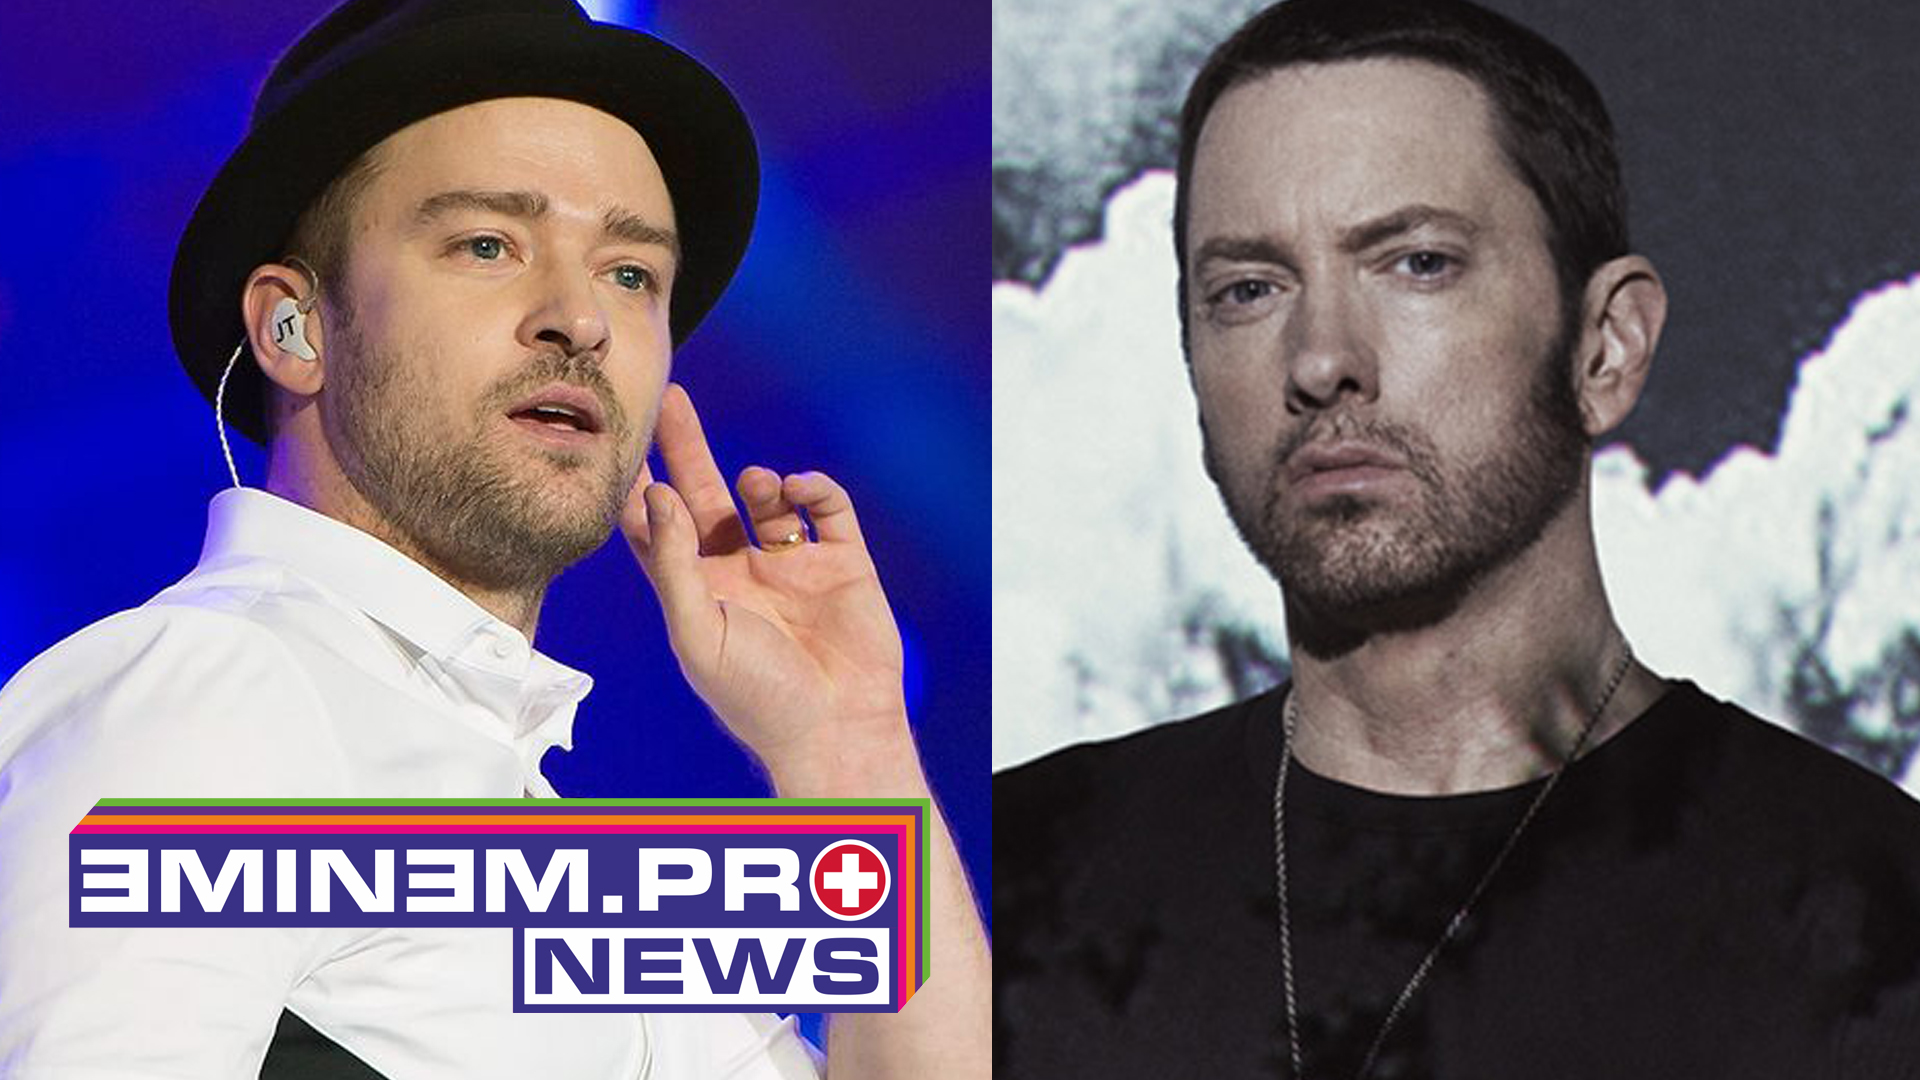 """ePro News 60: Justin Timberlake had performed a mix of """"My Love"""" & Eminem's """"Forgot About Dre"""""""